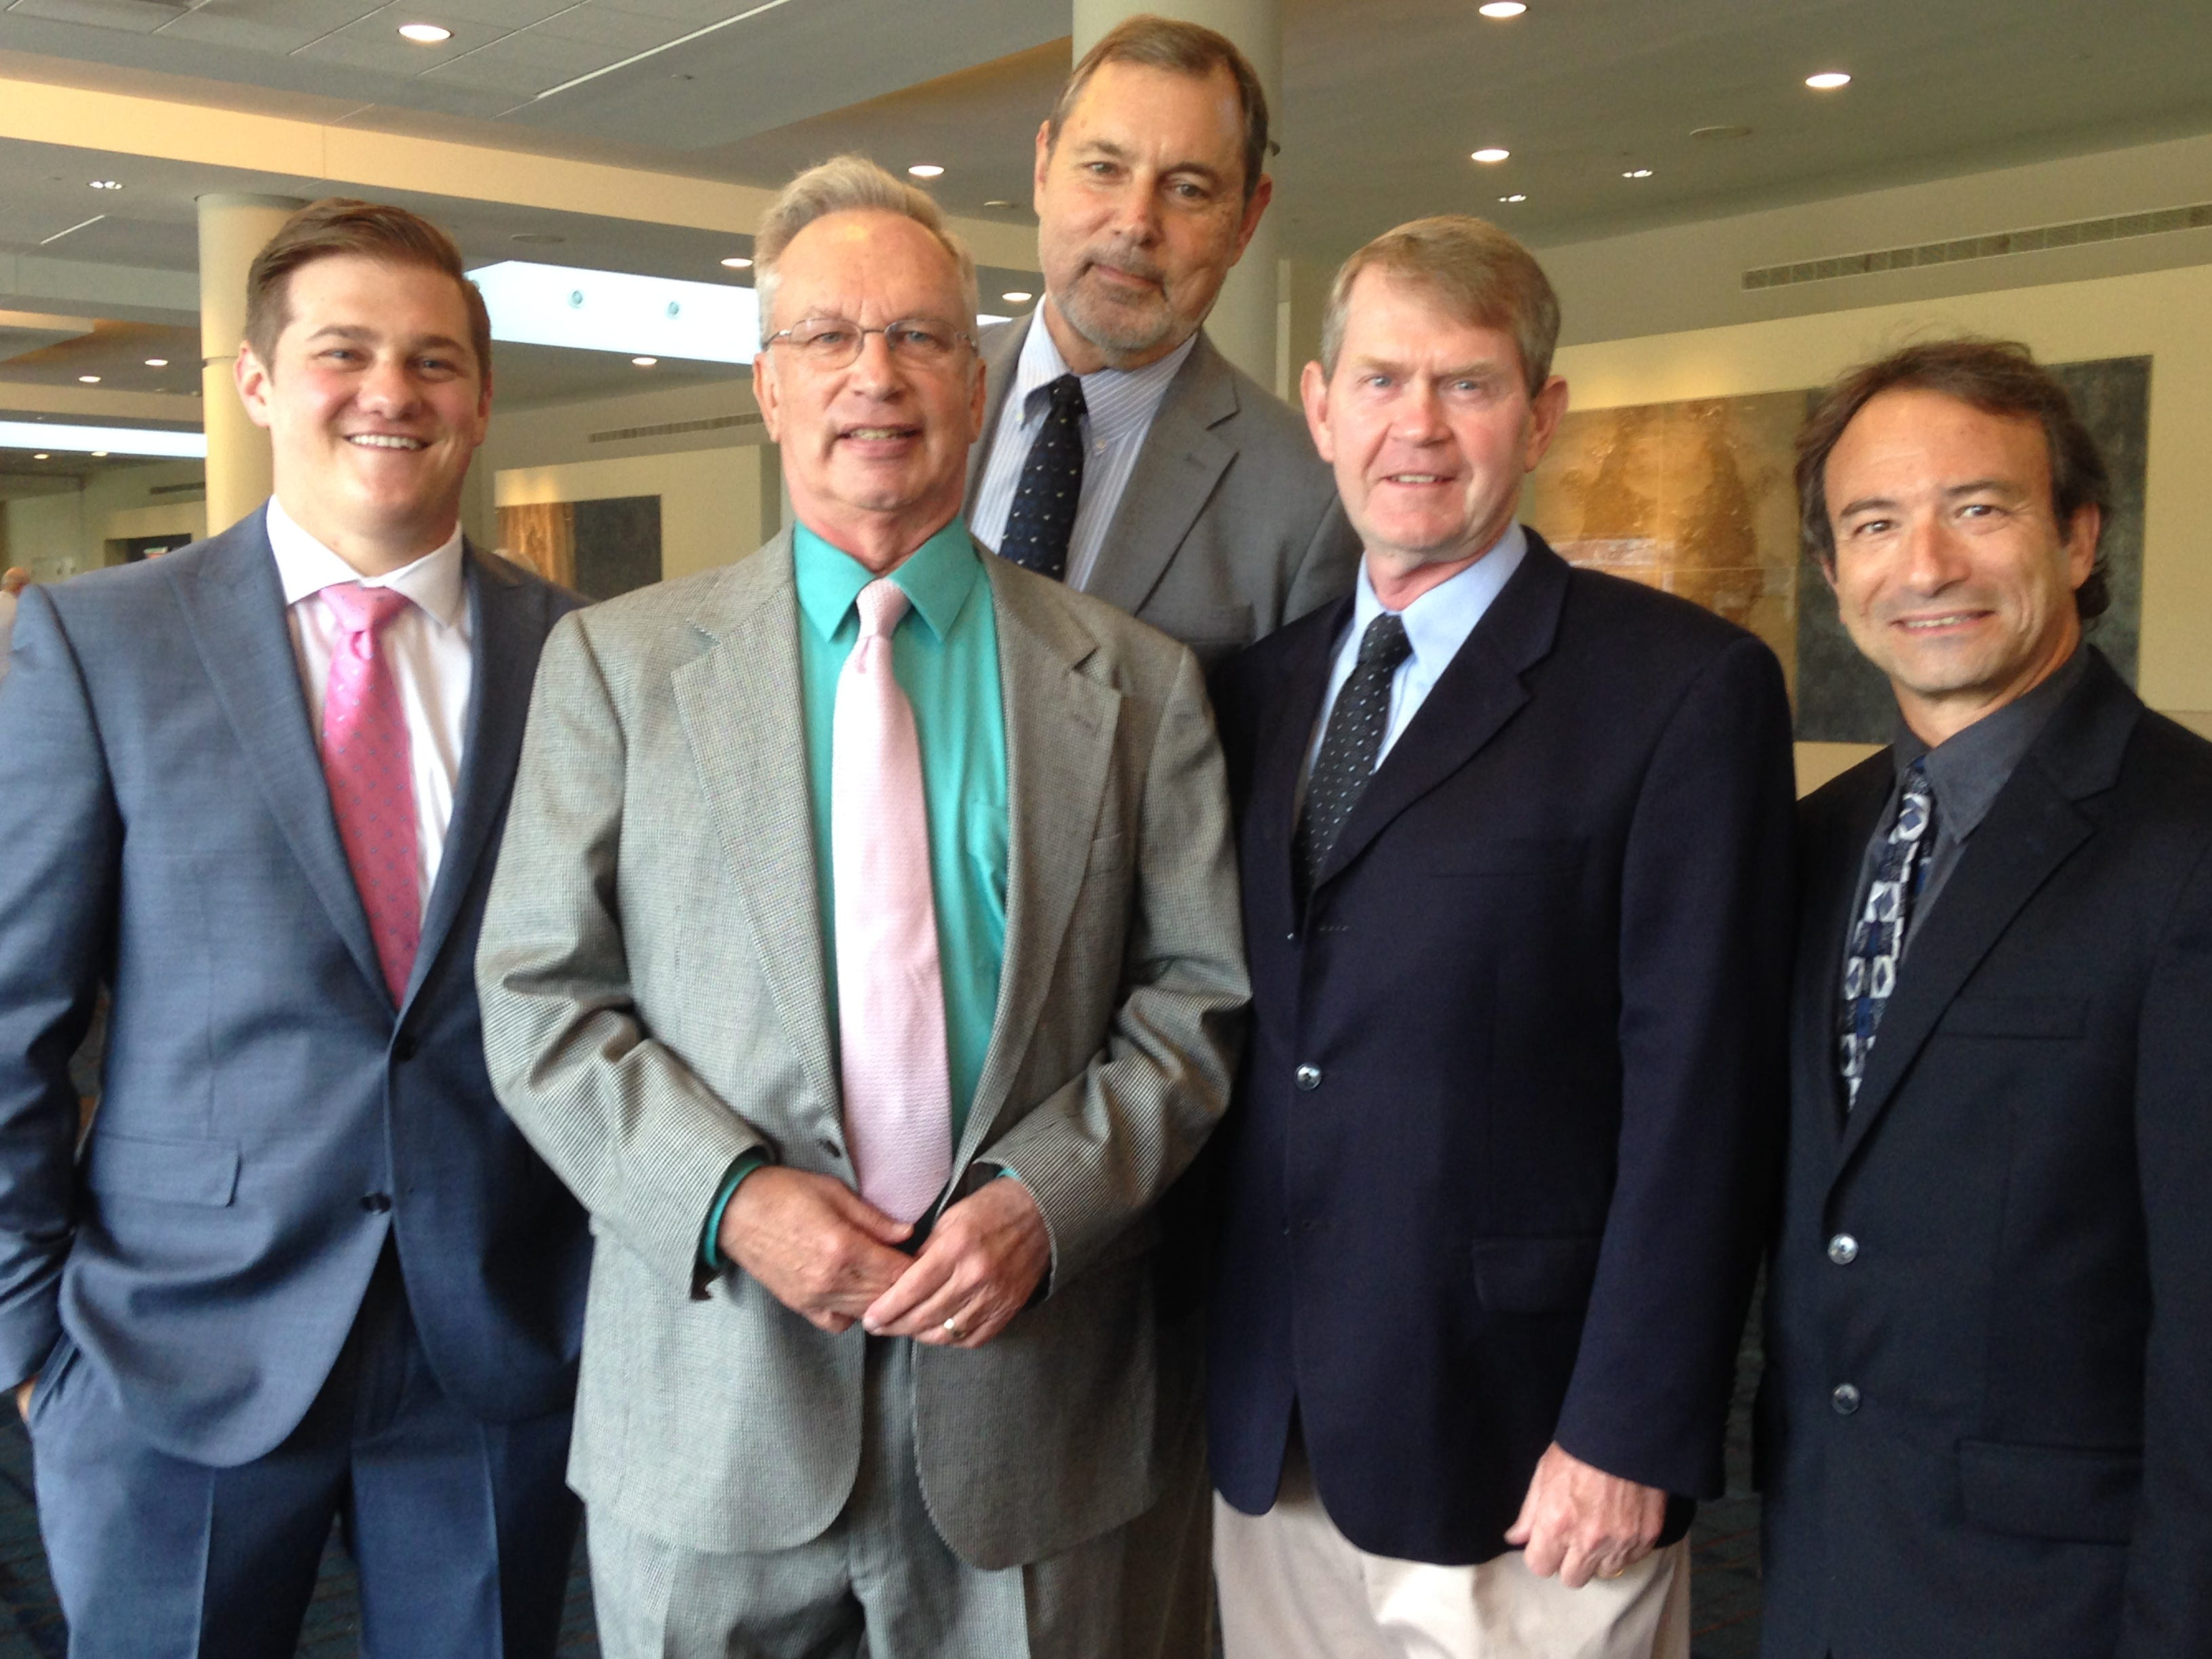 Front Page Follies honoree John Adams is surrounded by other local sports media personalities. Ben Frederickson, John Adams, Mike Strange, Jimmy Hyams and Phil Kaplan at the recent fundraiser.